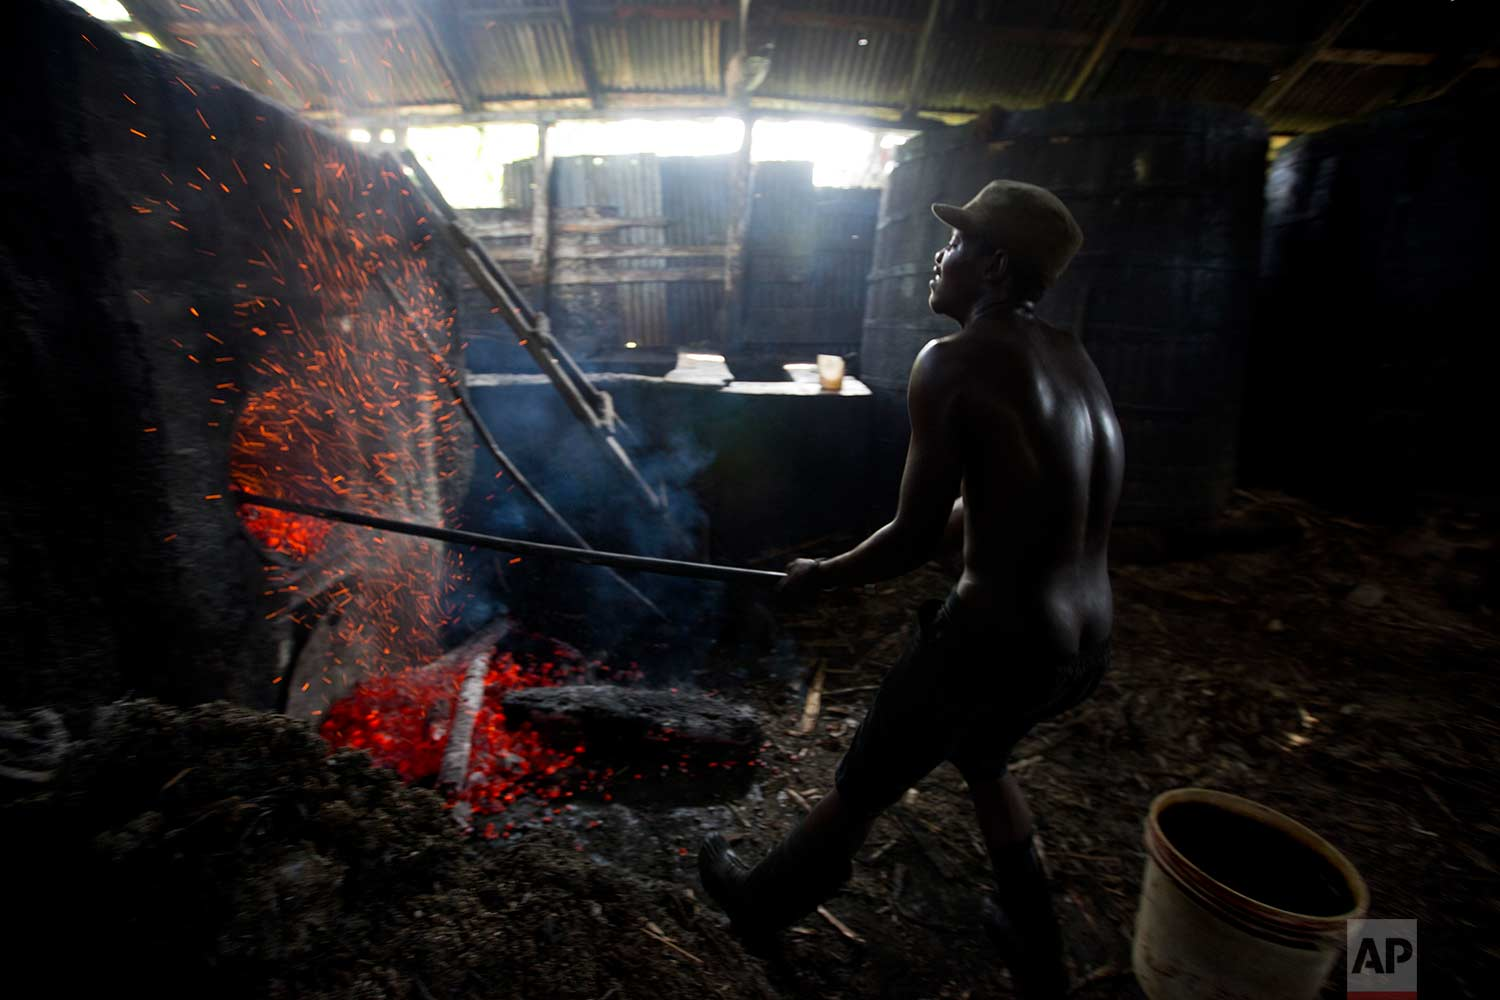 In this June 16, 2017 photo, Batel Delciner, 23, removes wood from a furnace to lower the heat cooking sugar juice at the Ti Jean distillery, which produces clairin, a sugar-based alcoholic drink, in Leogane, Haiti. (AP Photo/Dieu Nalio Chery)